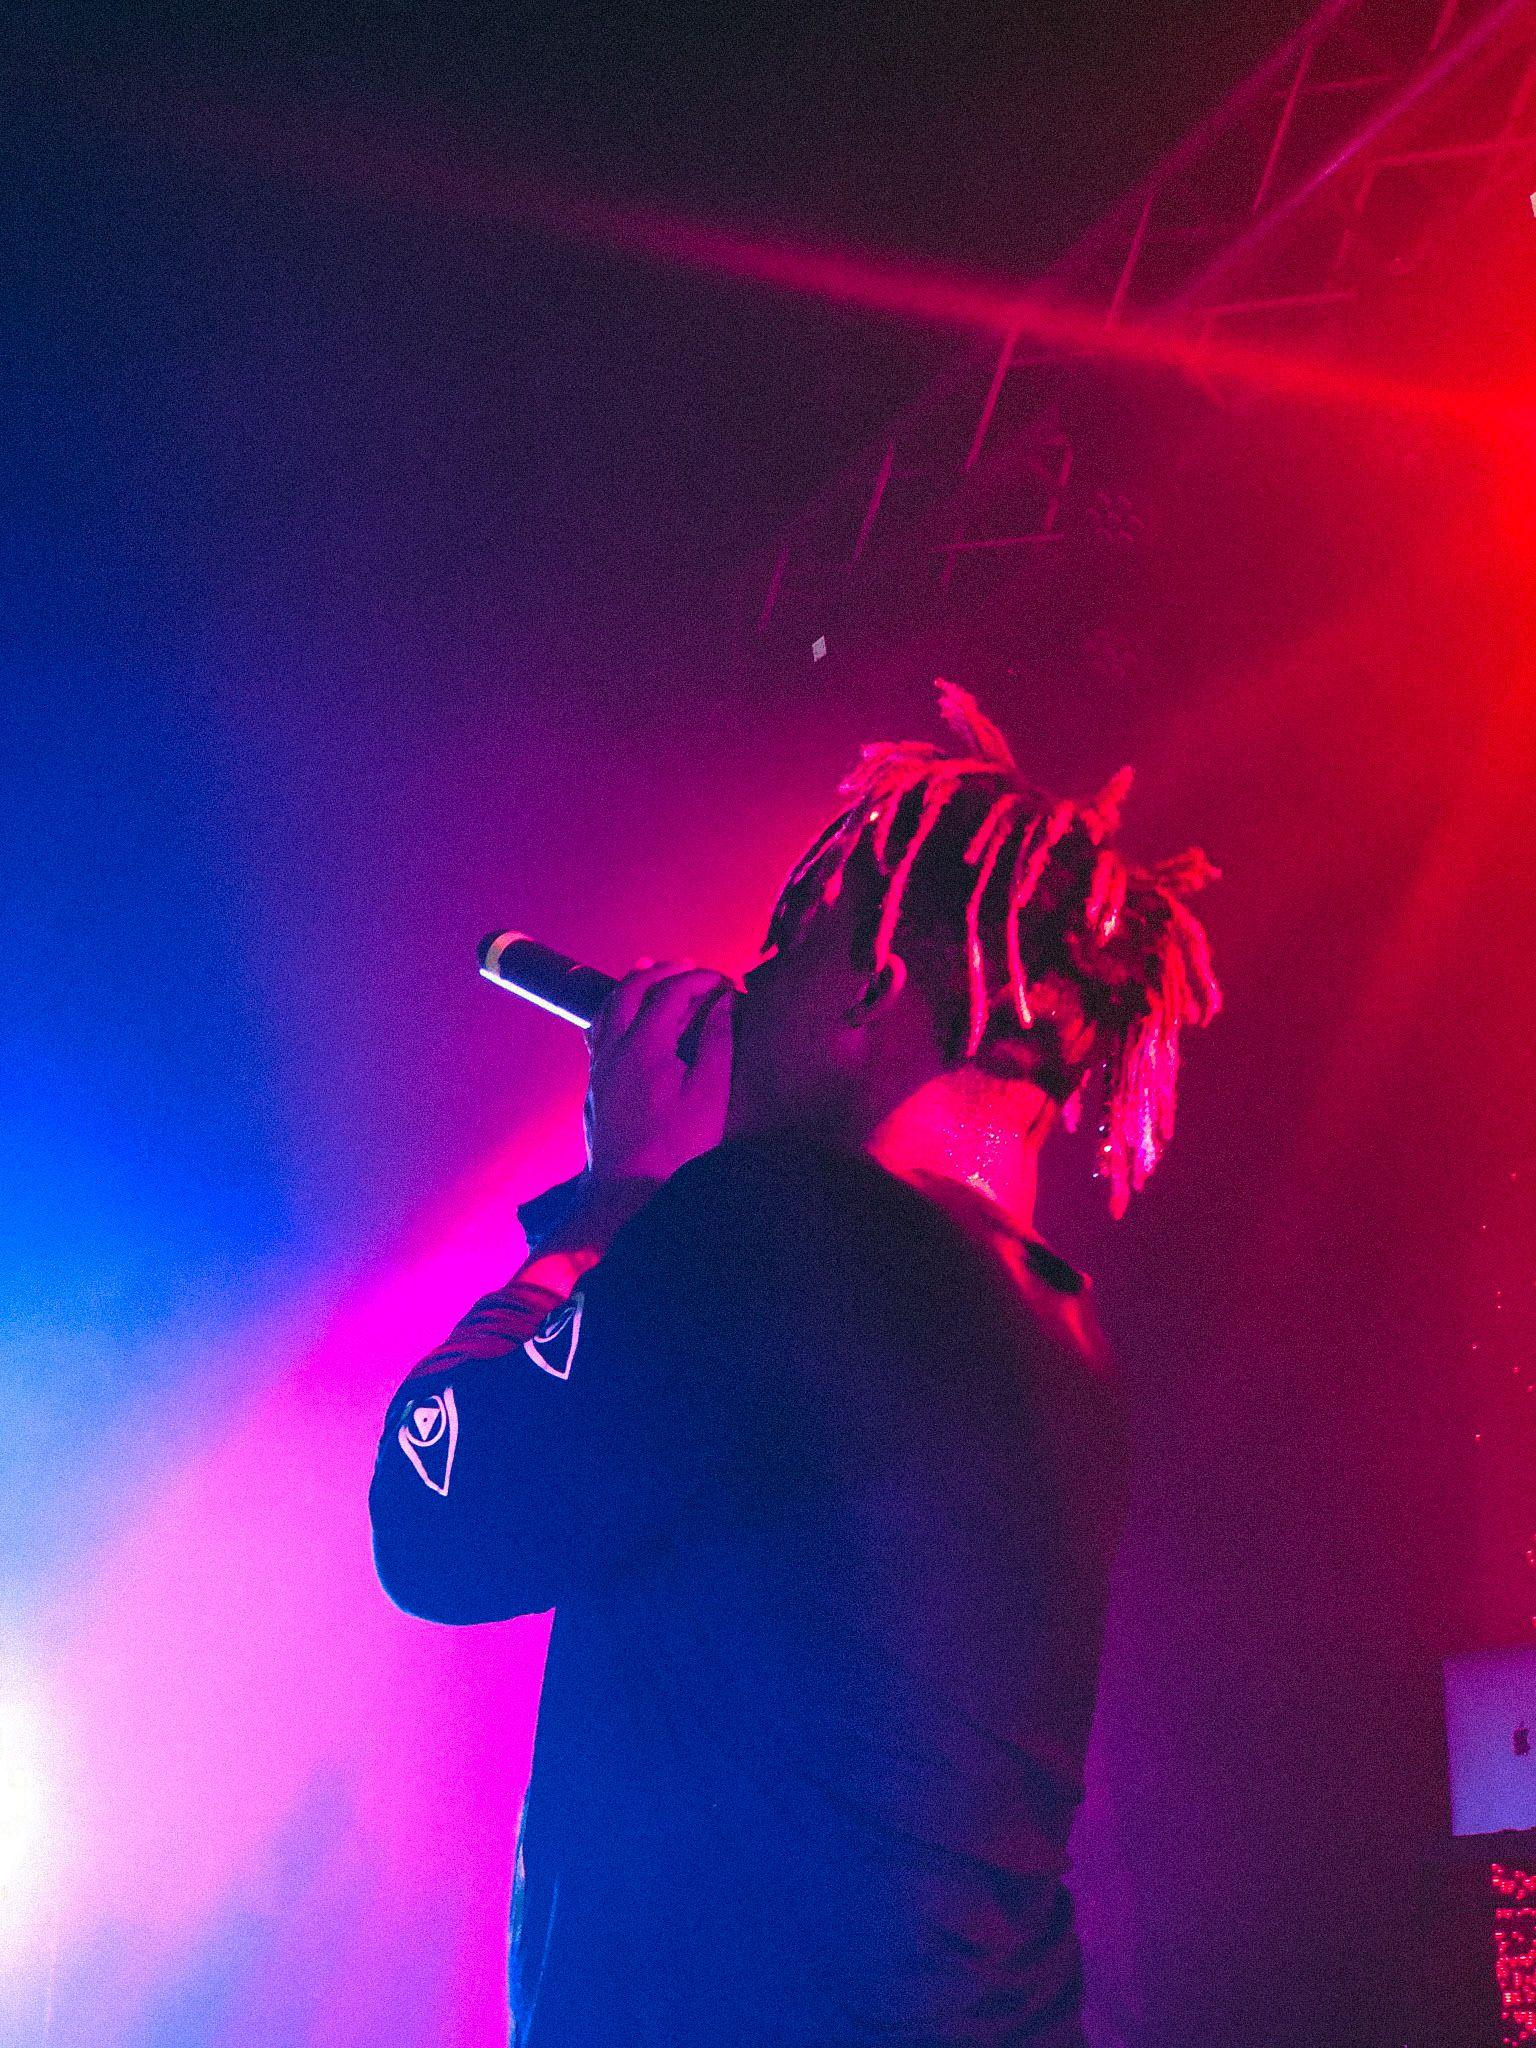 Juice Wrld Iphone Wallpapers Wallpaper Cave